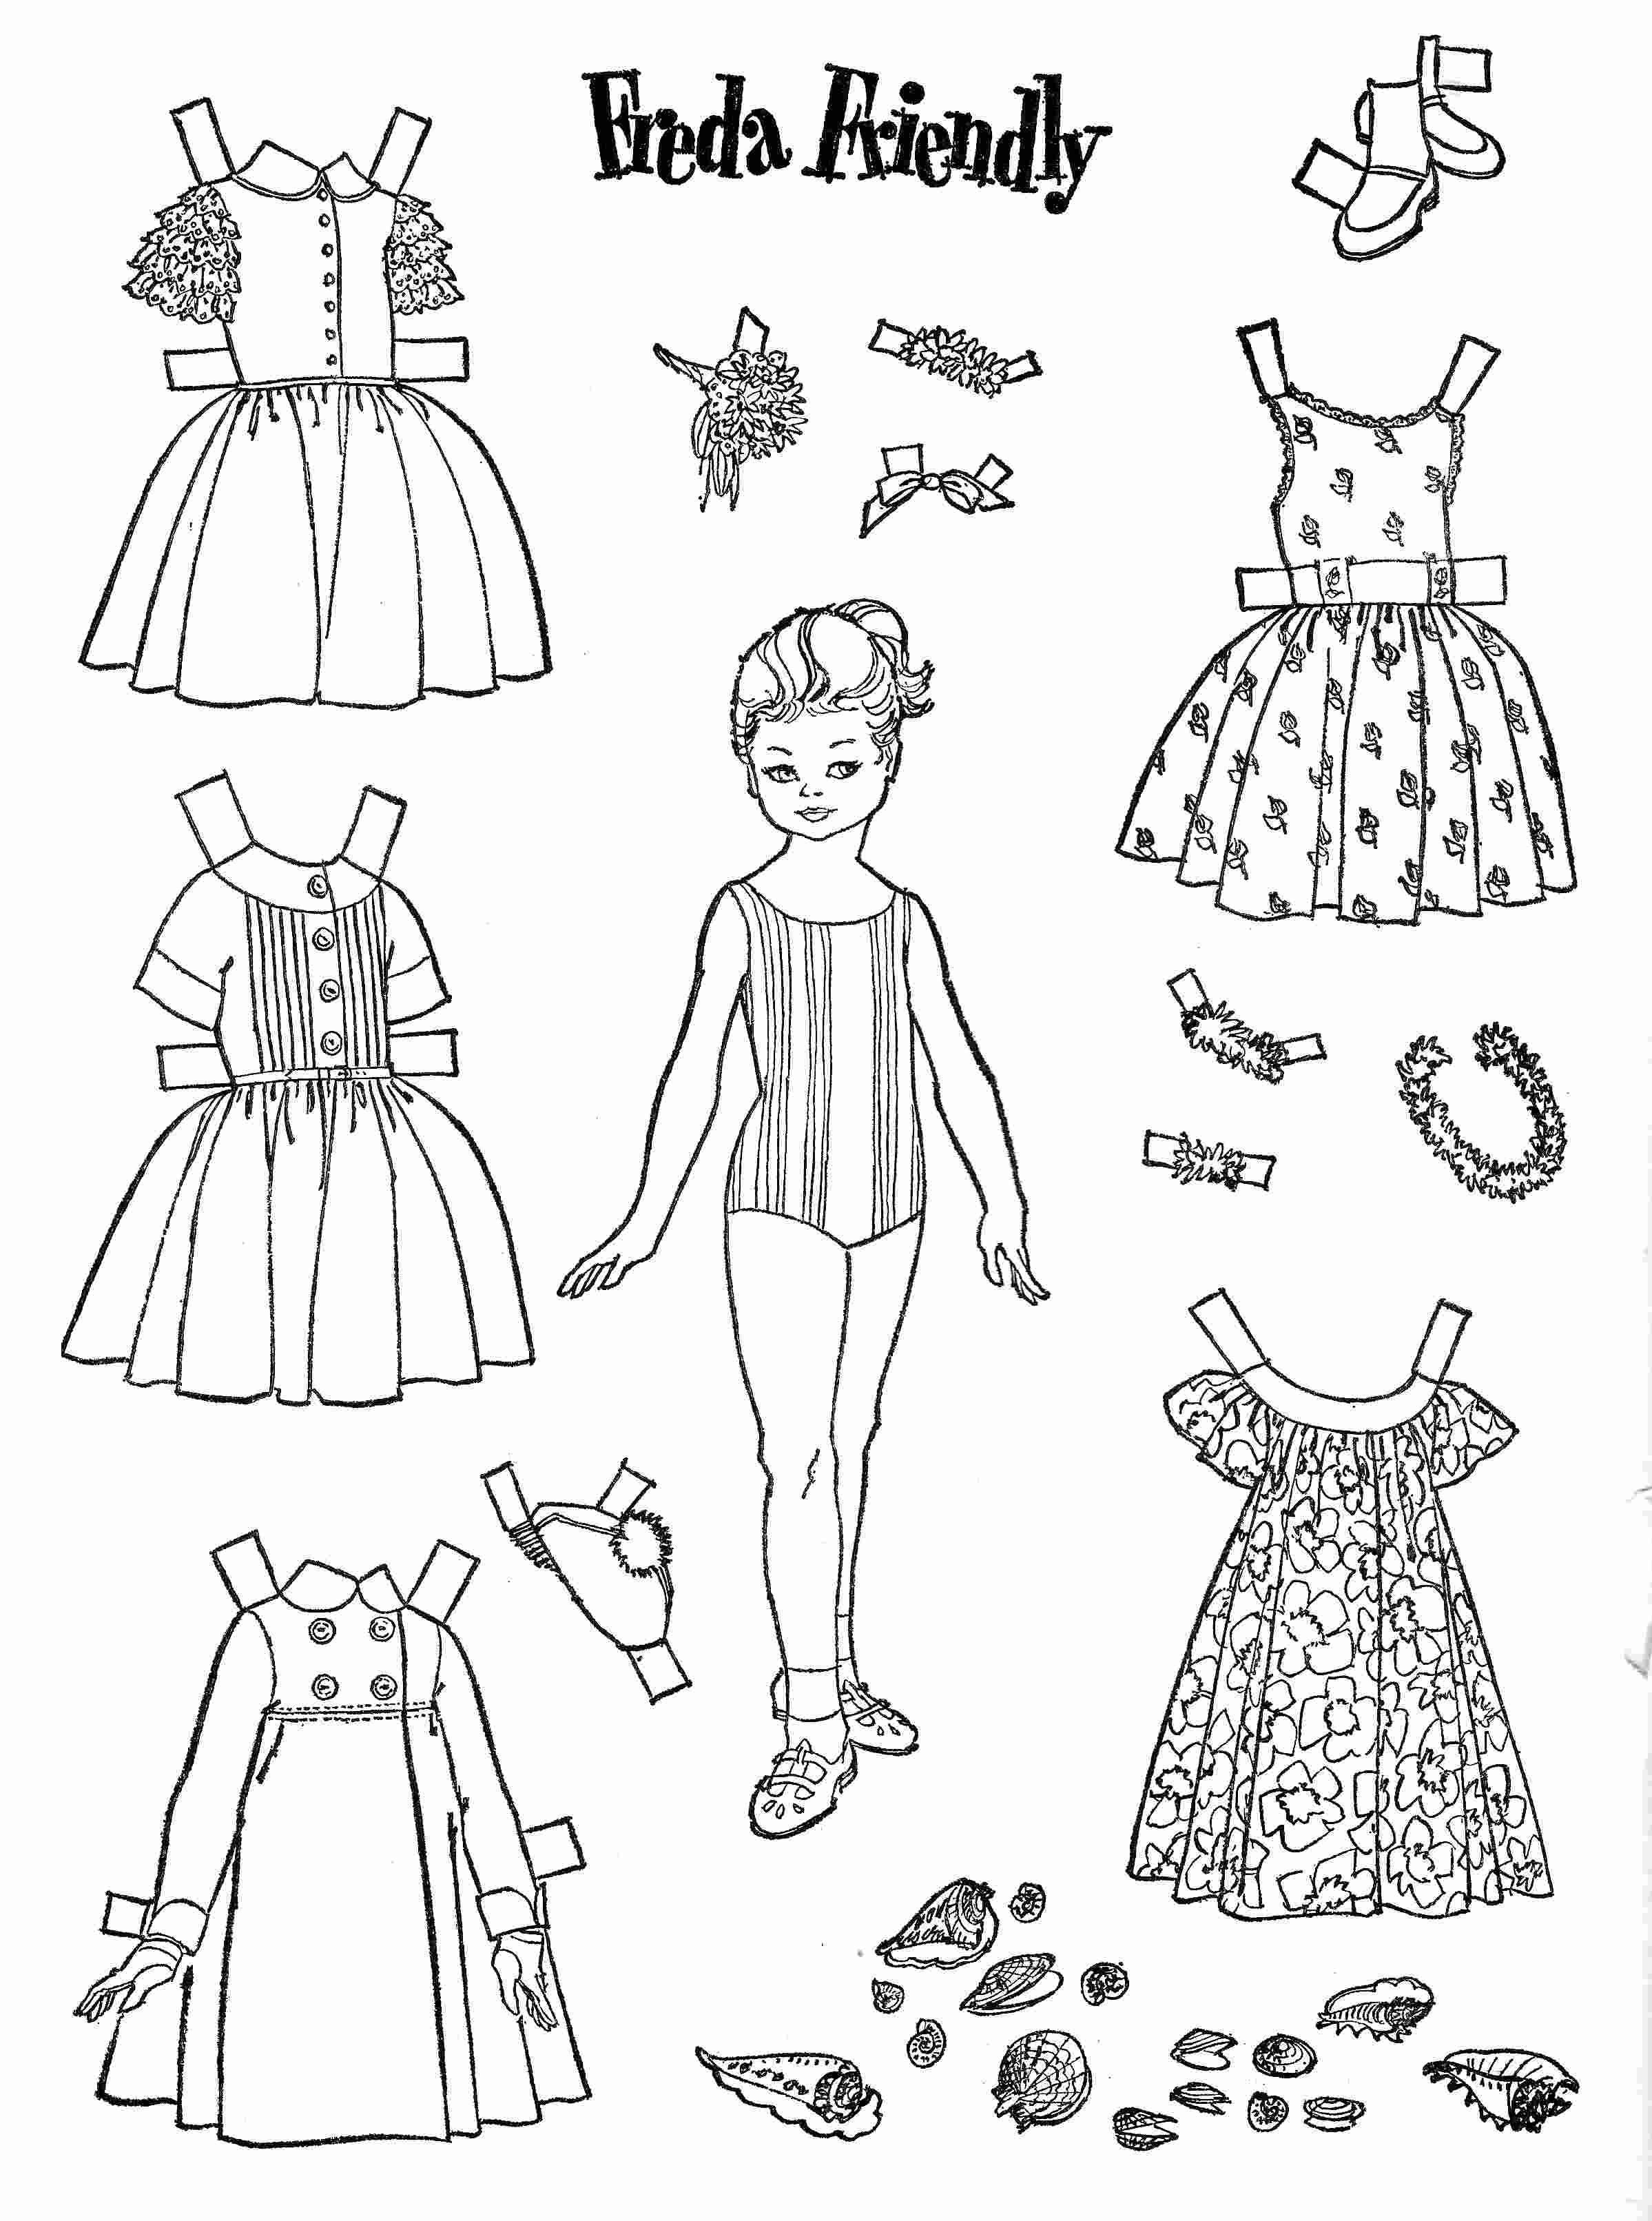 dress up paper dolls coloring pages paper doll dress up coloring pages new up paper dress dolls